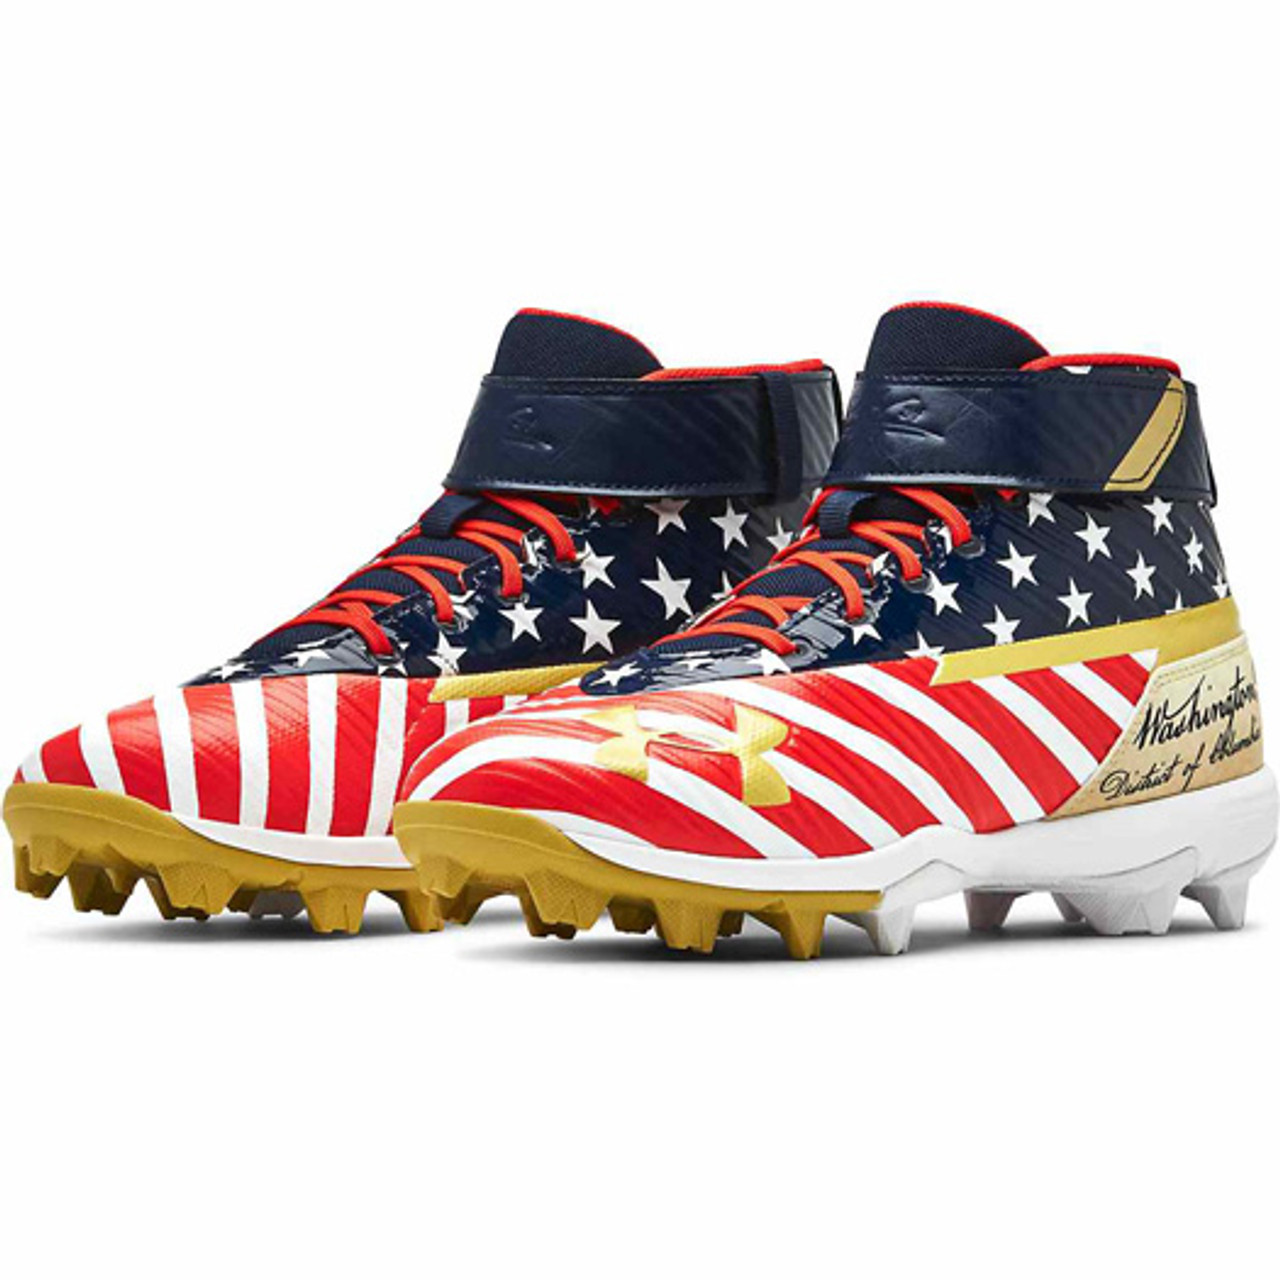 Under Armour Men/'s Bryce Harper One Mid ST Baseball Cleat Size 14